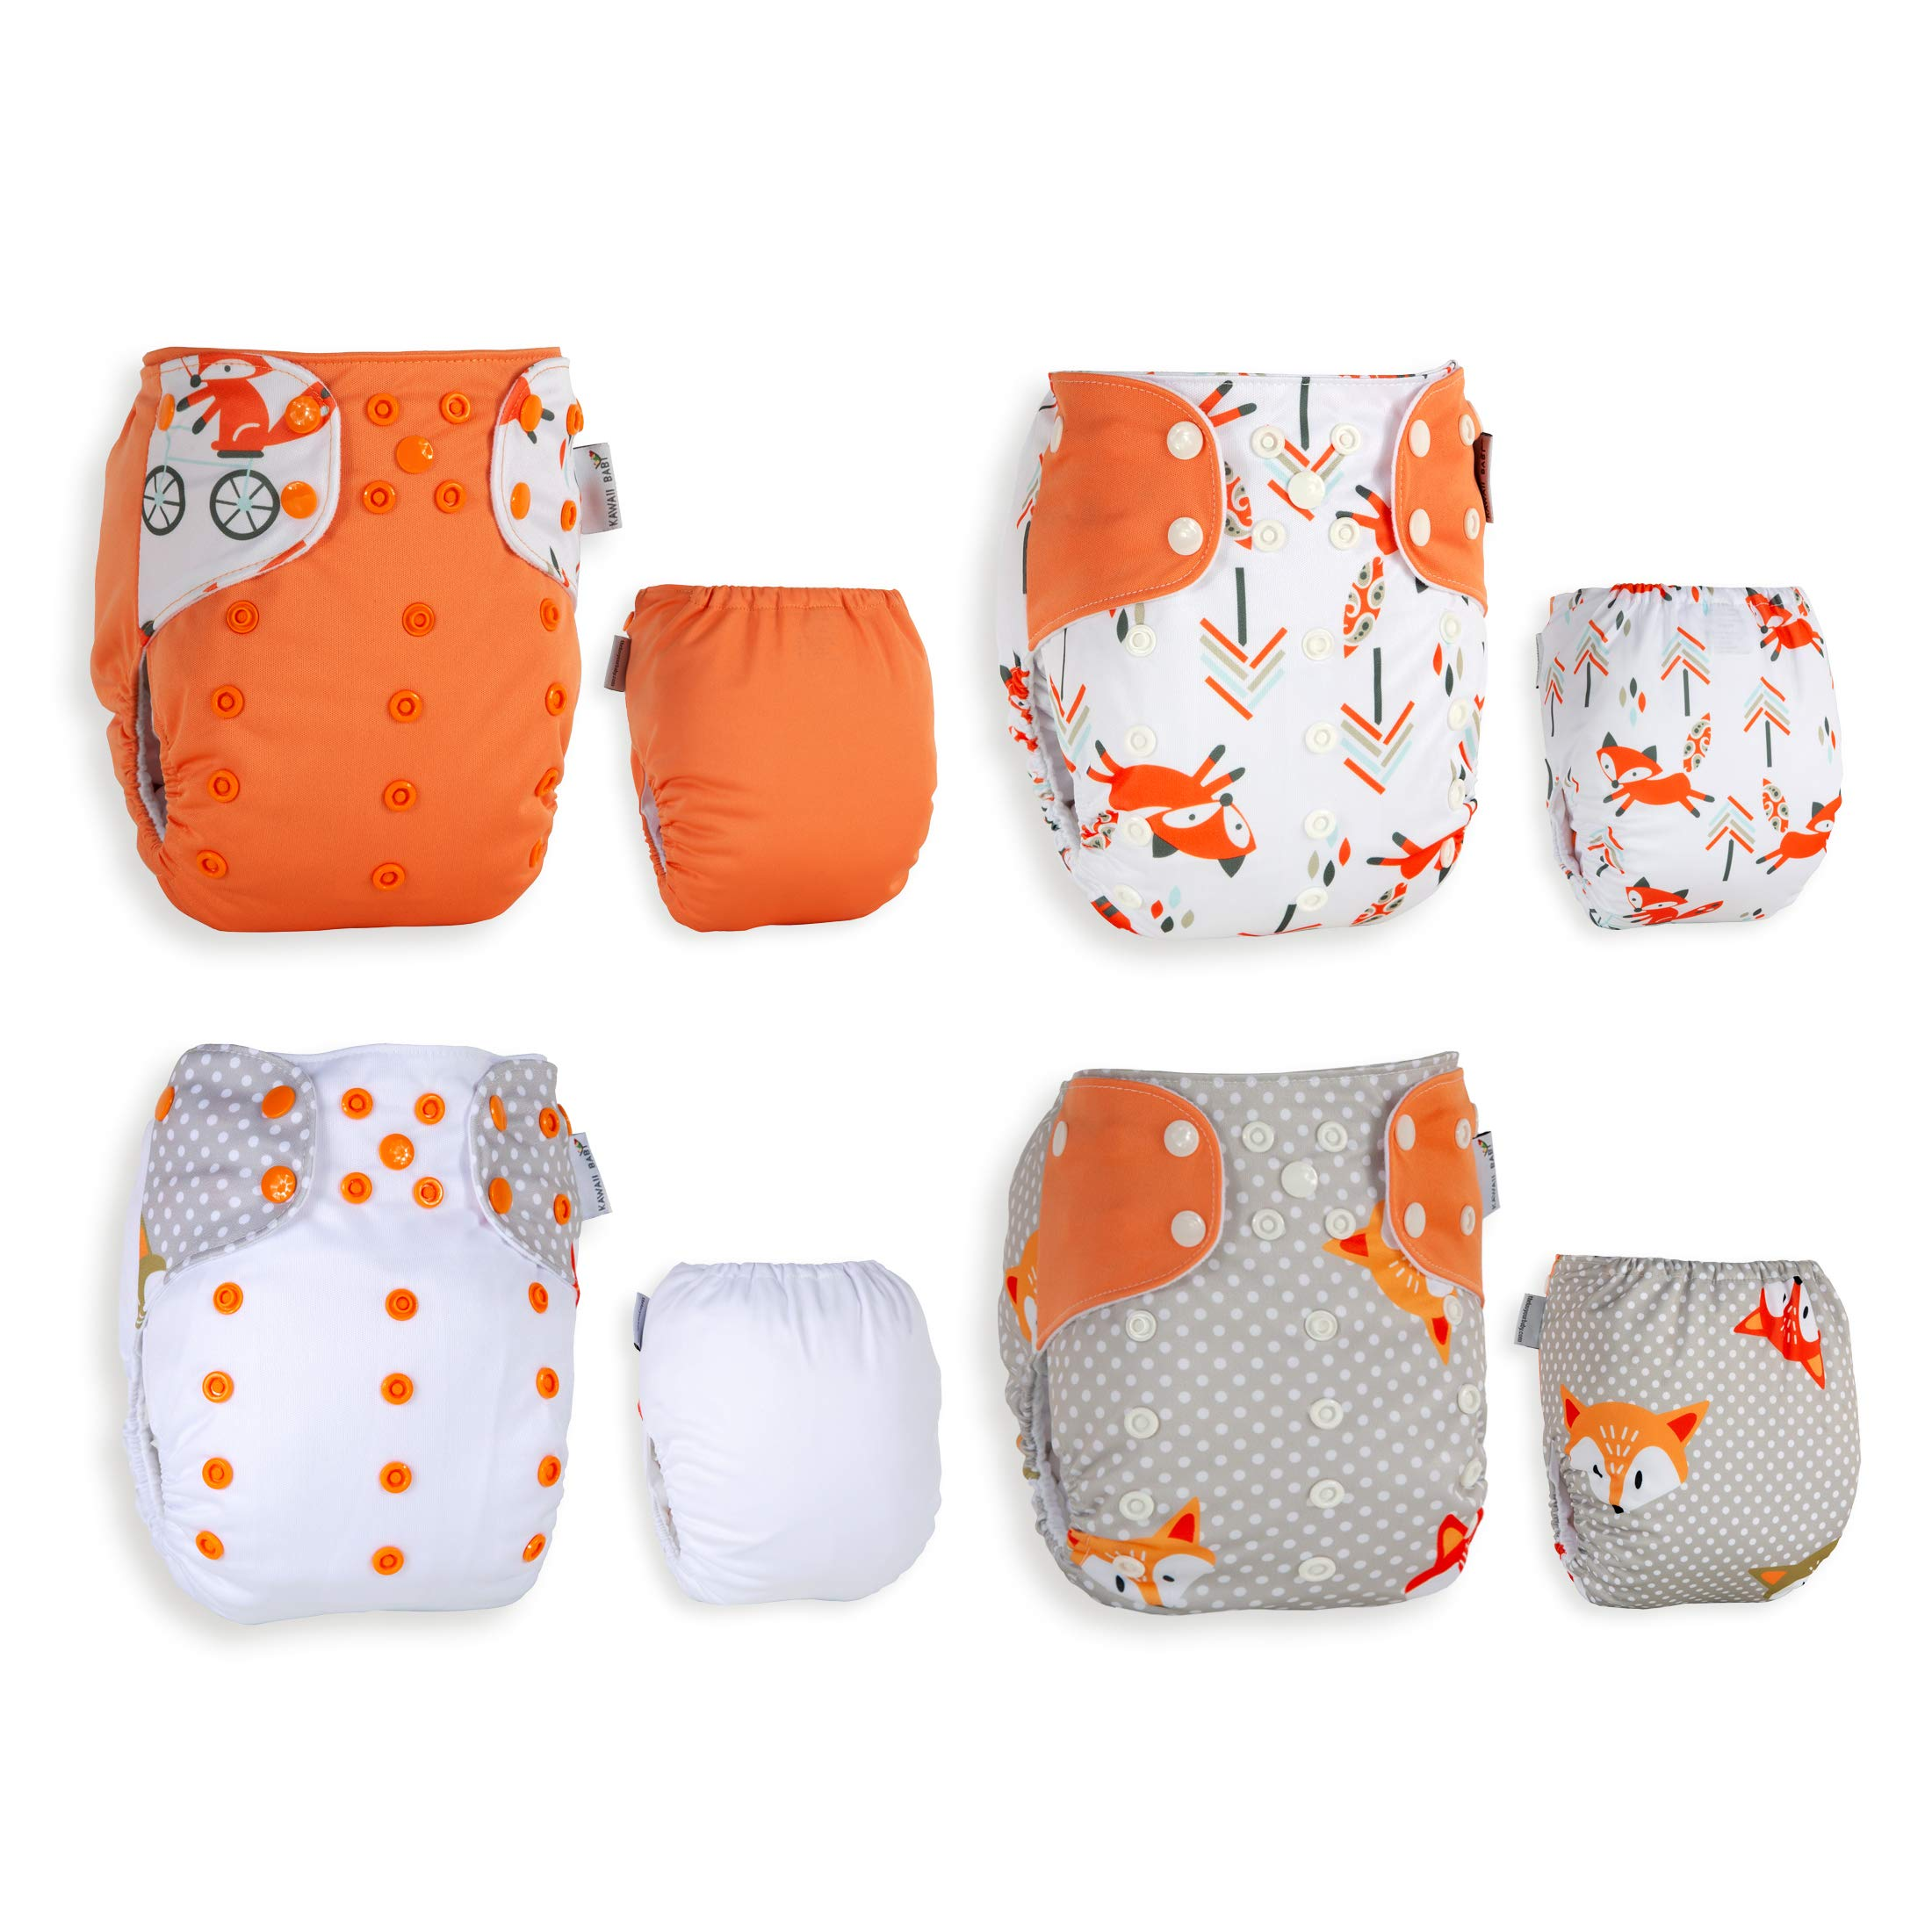 Best Seller! KaWaii Baby 20 One Size Printed Snap Cloth Diaper Shells/Spring Sunshine Theme/Reusable/Newborn to Toddler by Kawaii Baby (Image #6)